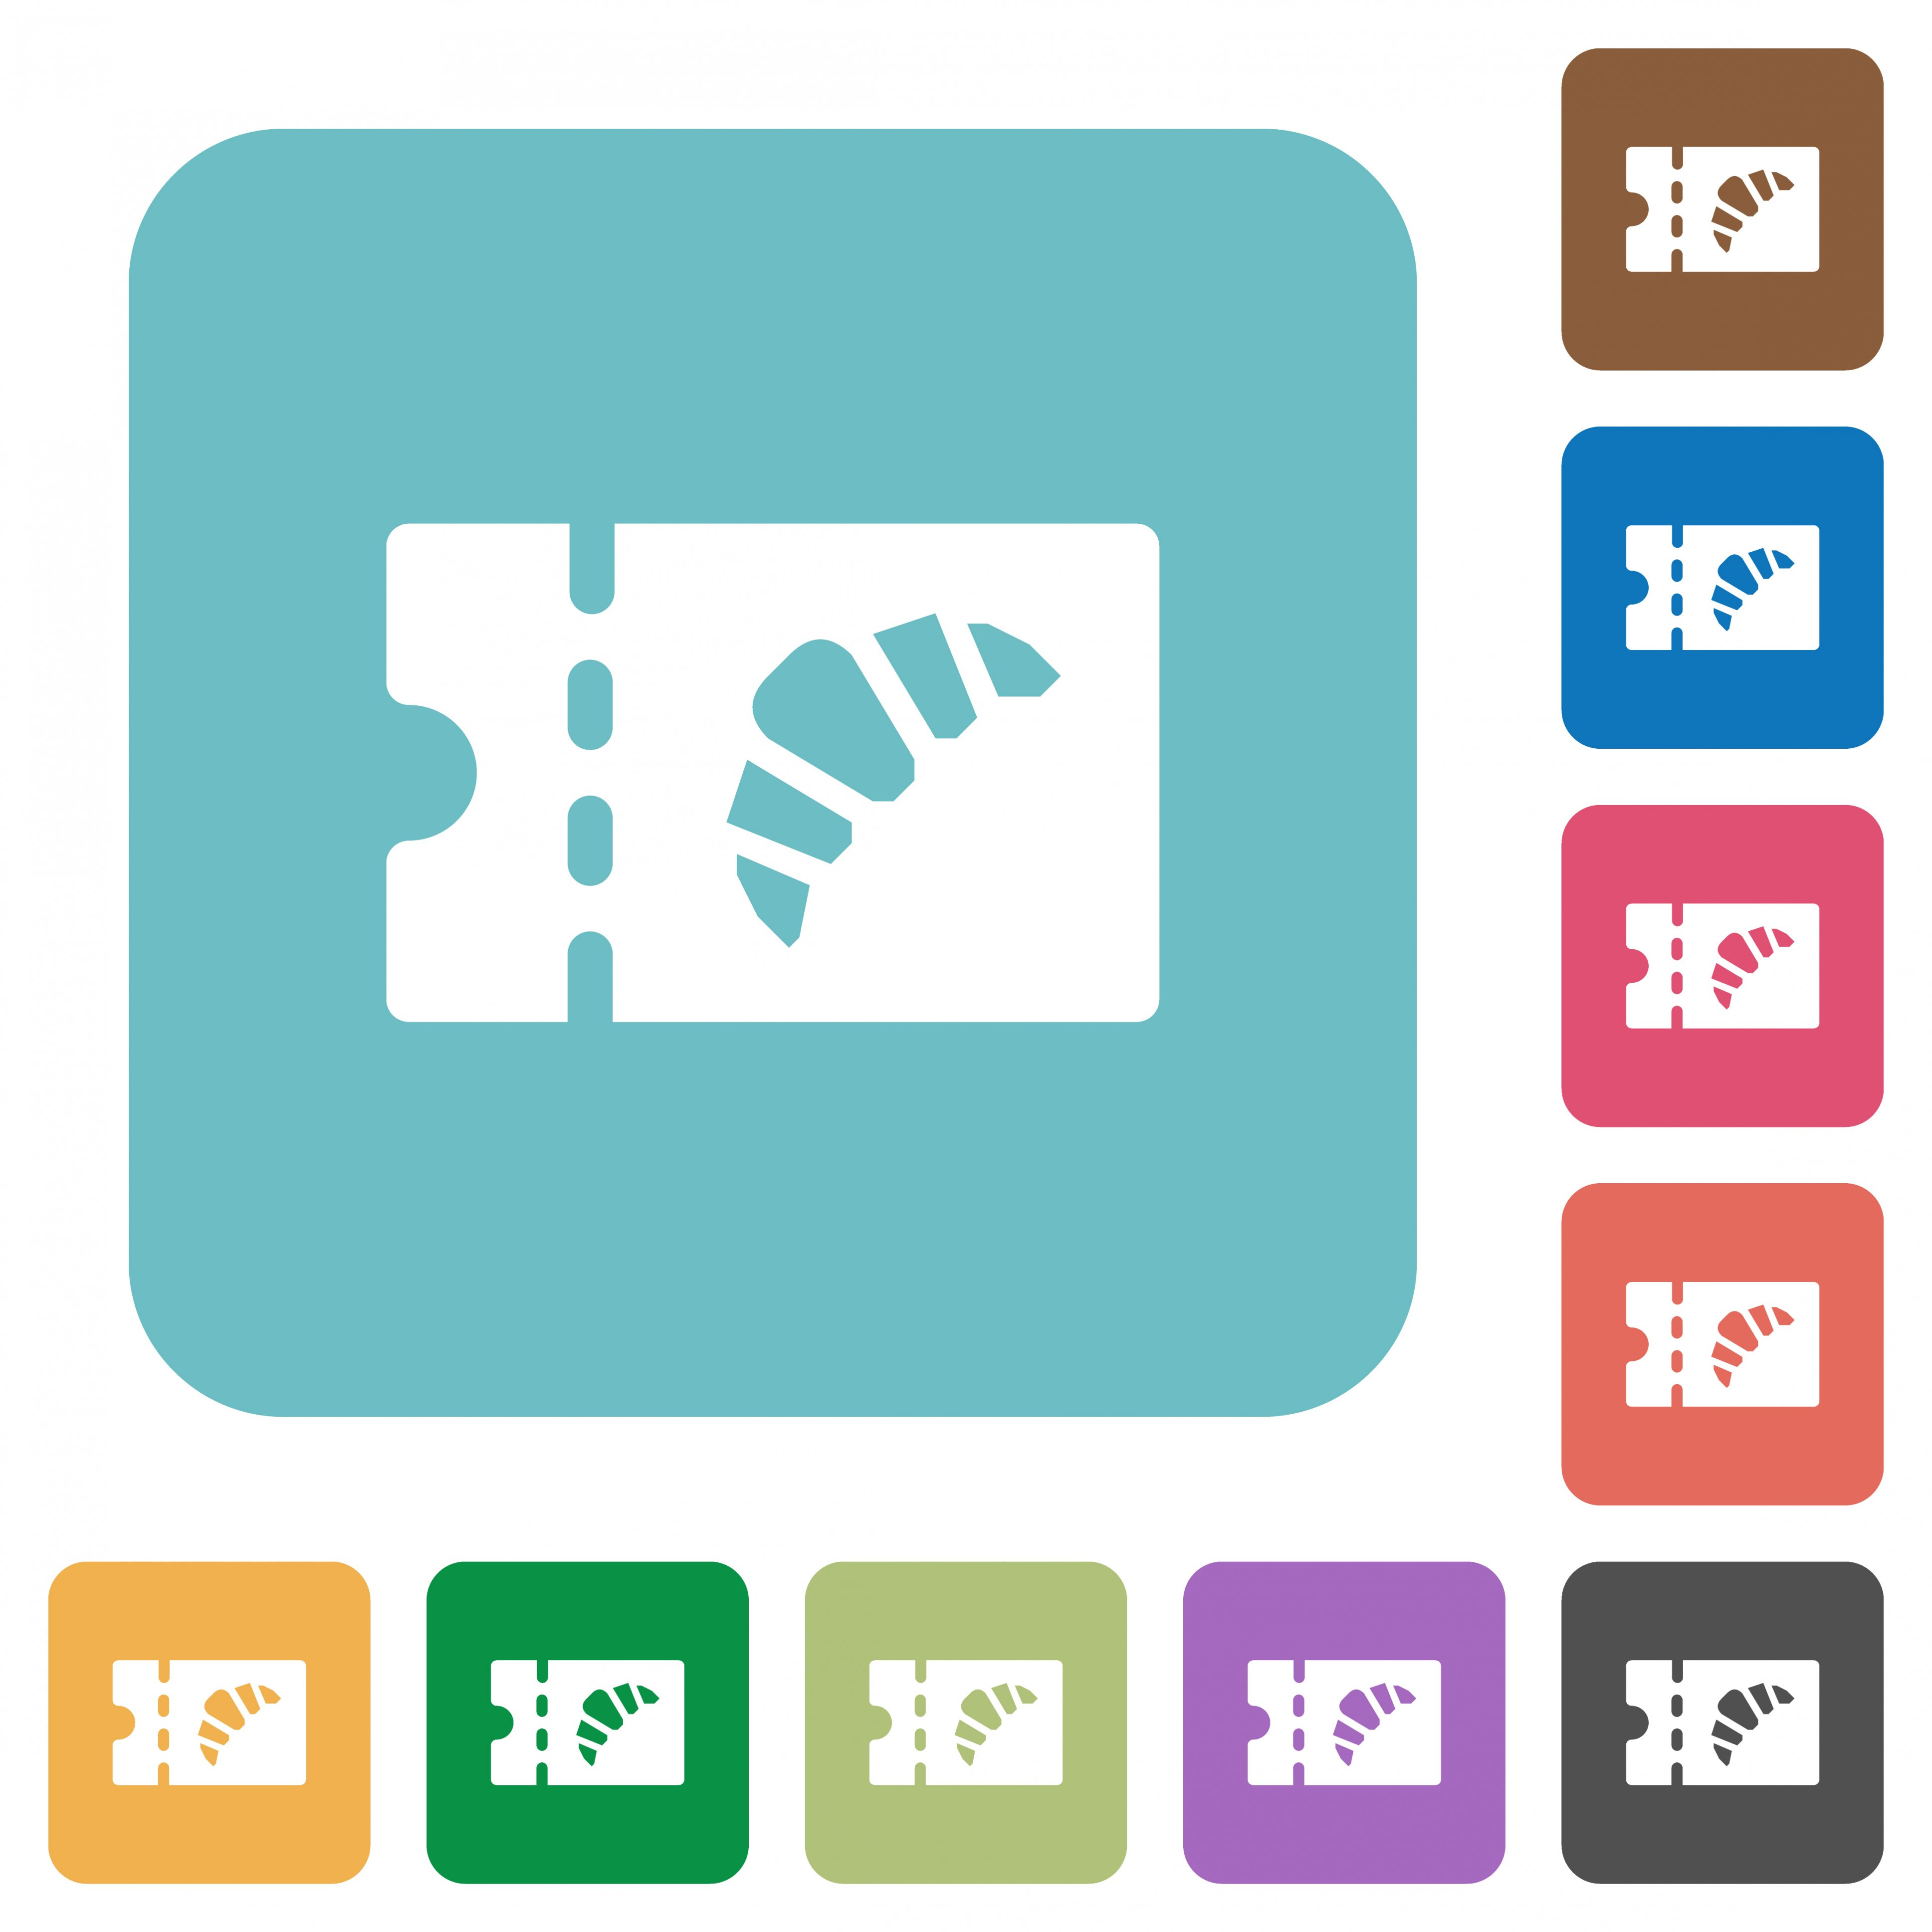 Bakery discount coupon white flat icons on color rounded square backgrounds - Free image